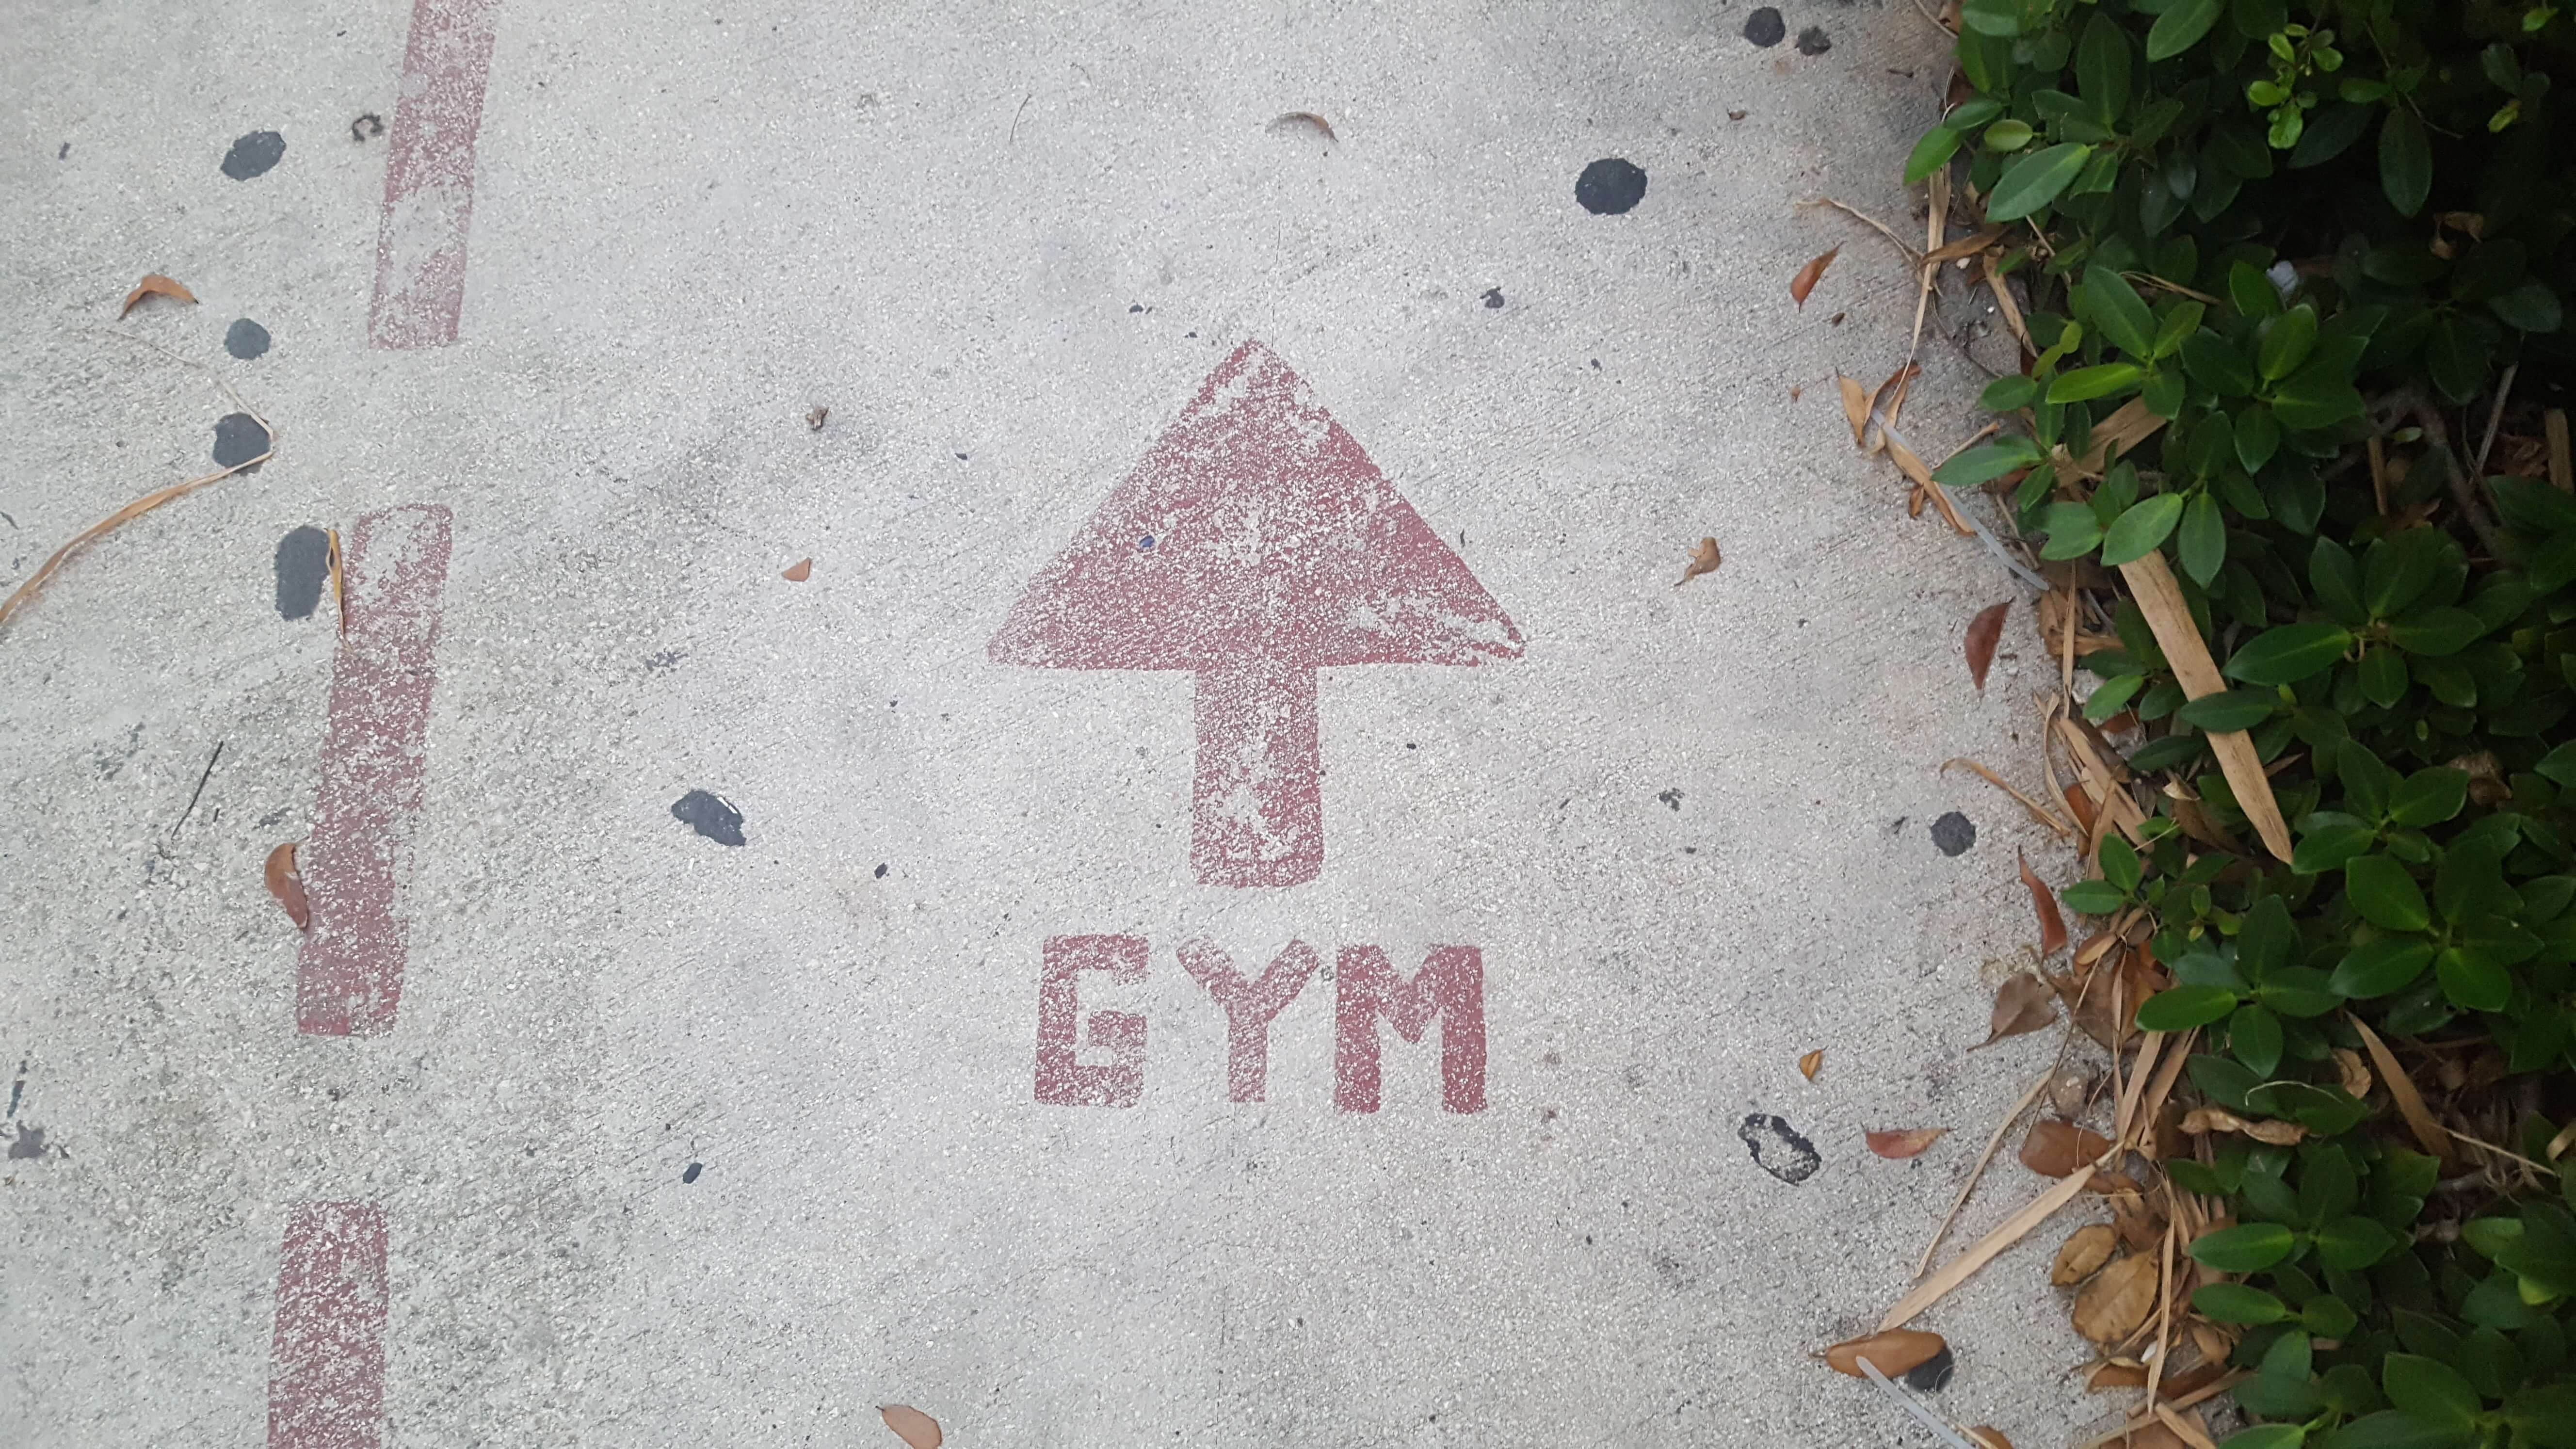 This way to the gym